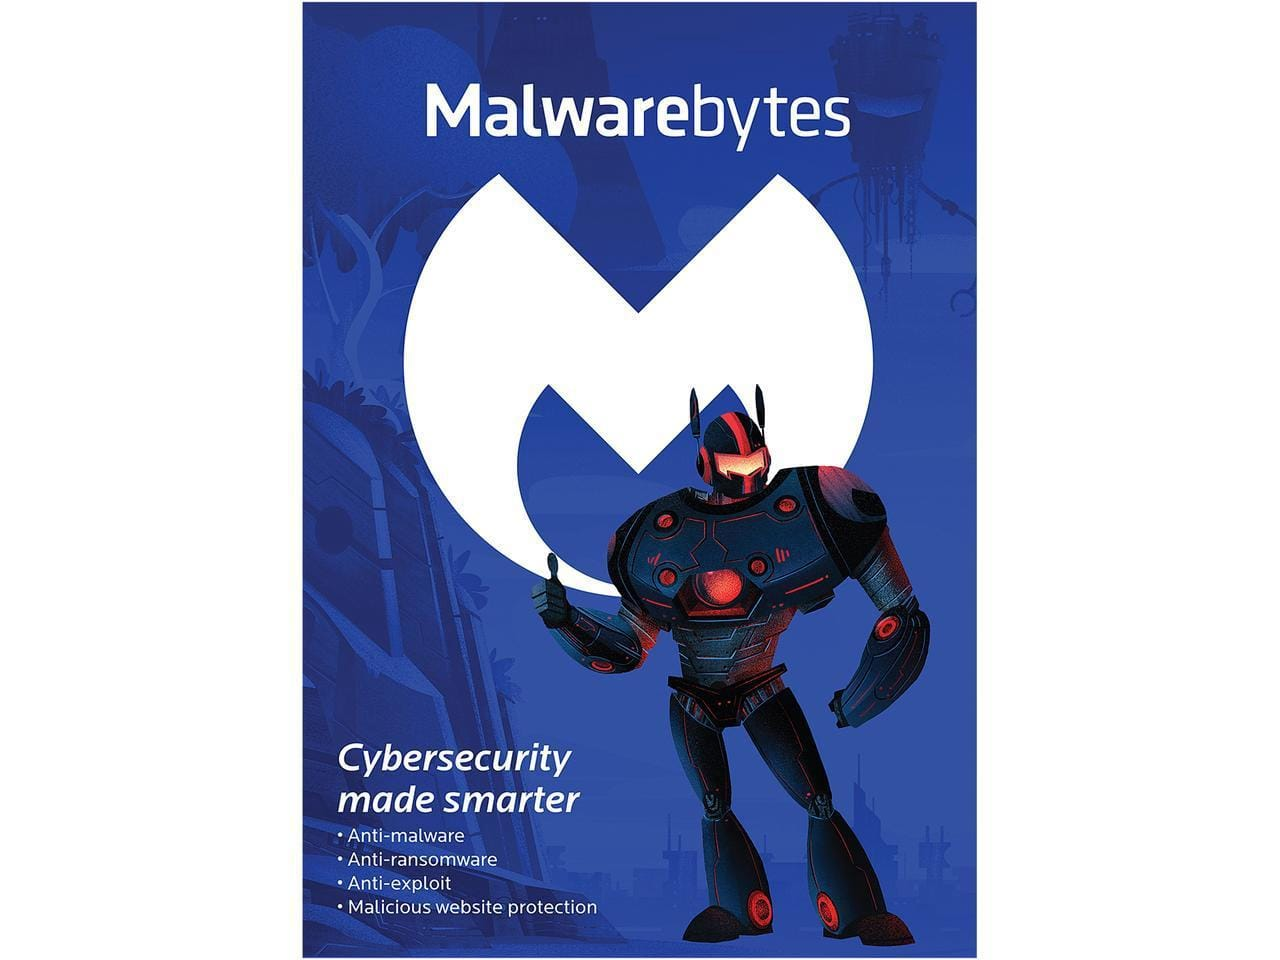 Avast Internet Security 2018 (3 PCs / 1 Year) + Malwarebytes Anti-Malware 3.0 (3 PCs / 1 Year) for $22.99 AC + Free Ship @ Newegg